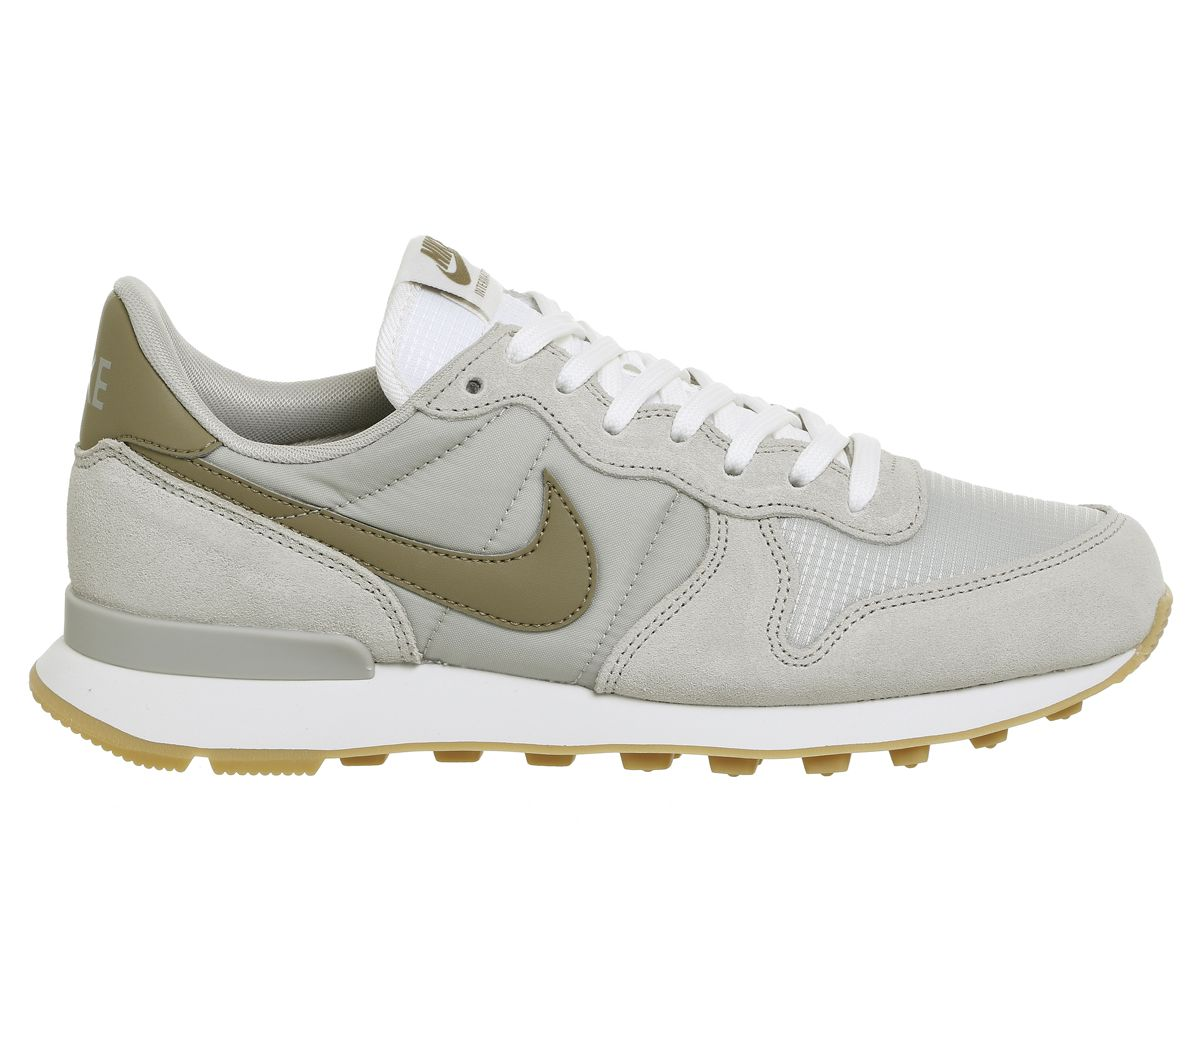 nike WMNS INTERNATIONALIST PALE GREYKHAKI SUMMIT WHITE bei